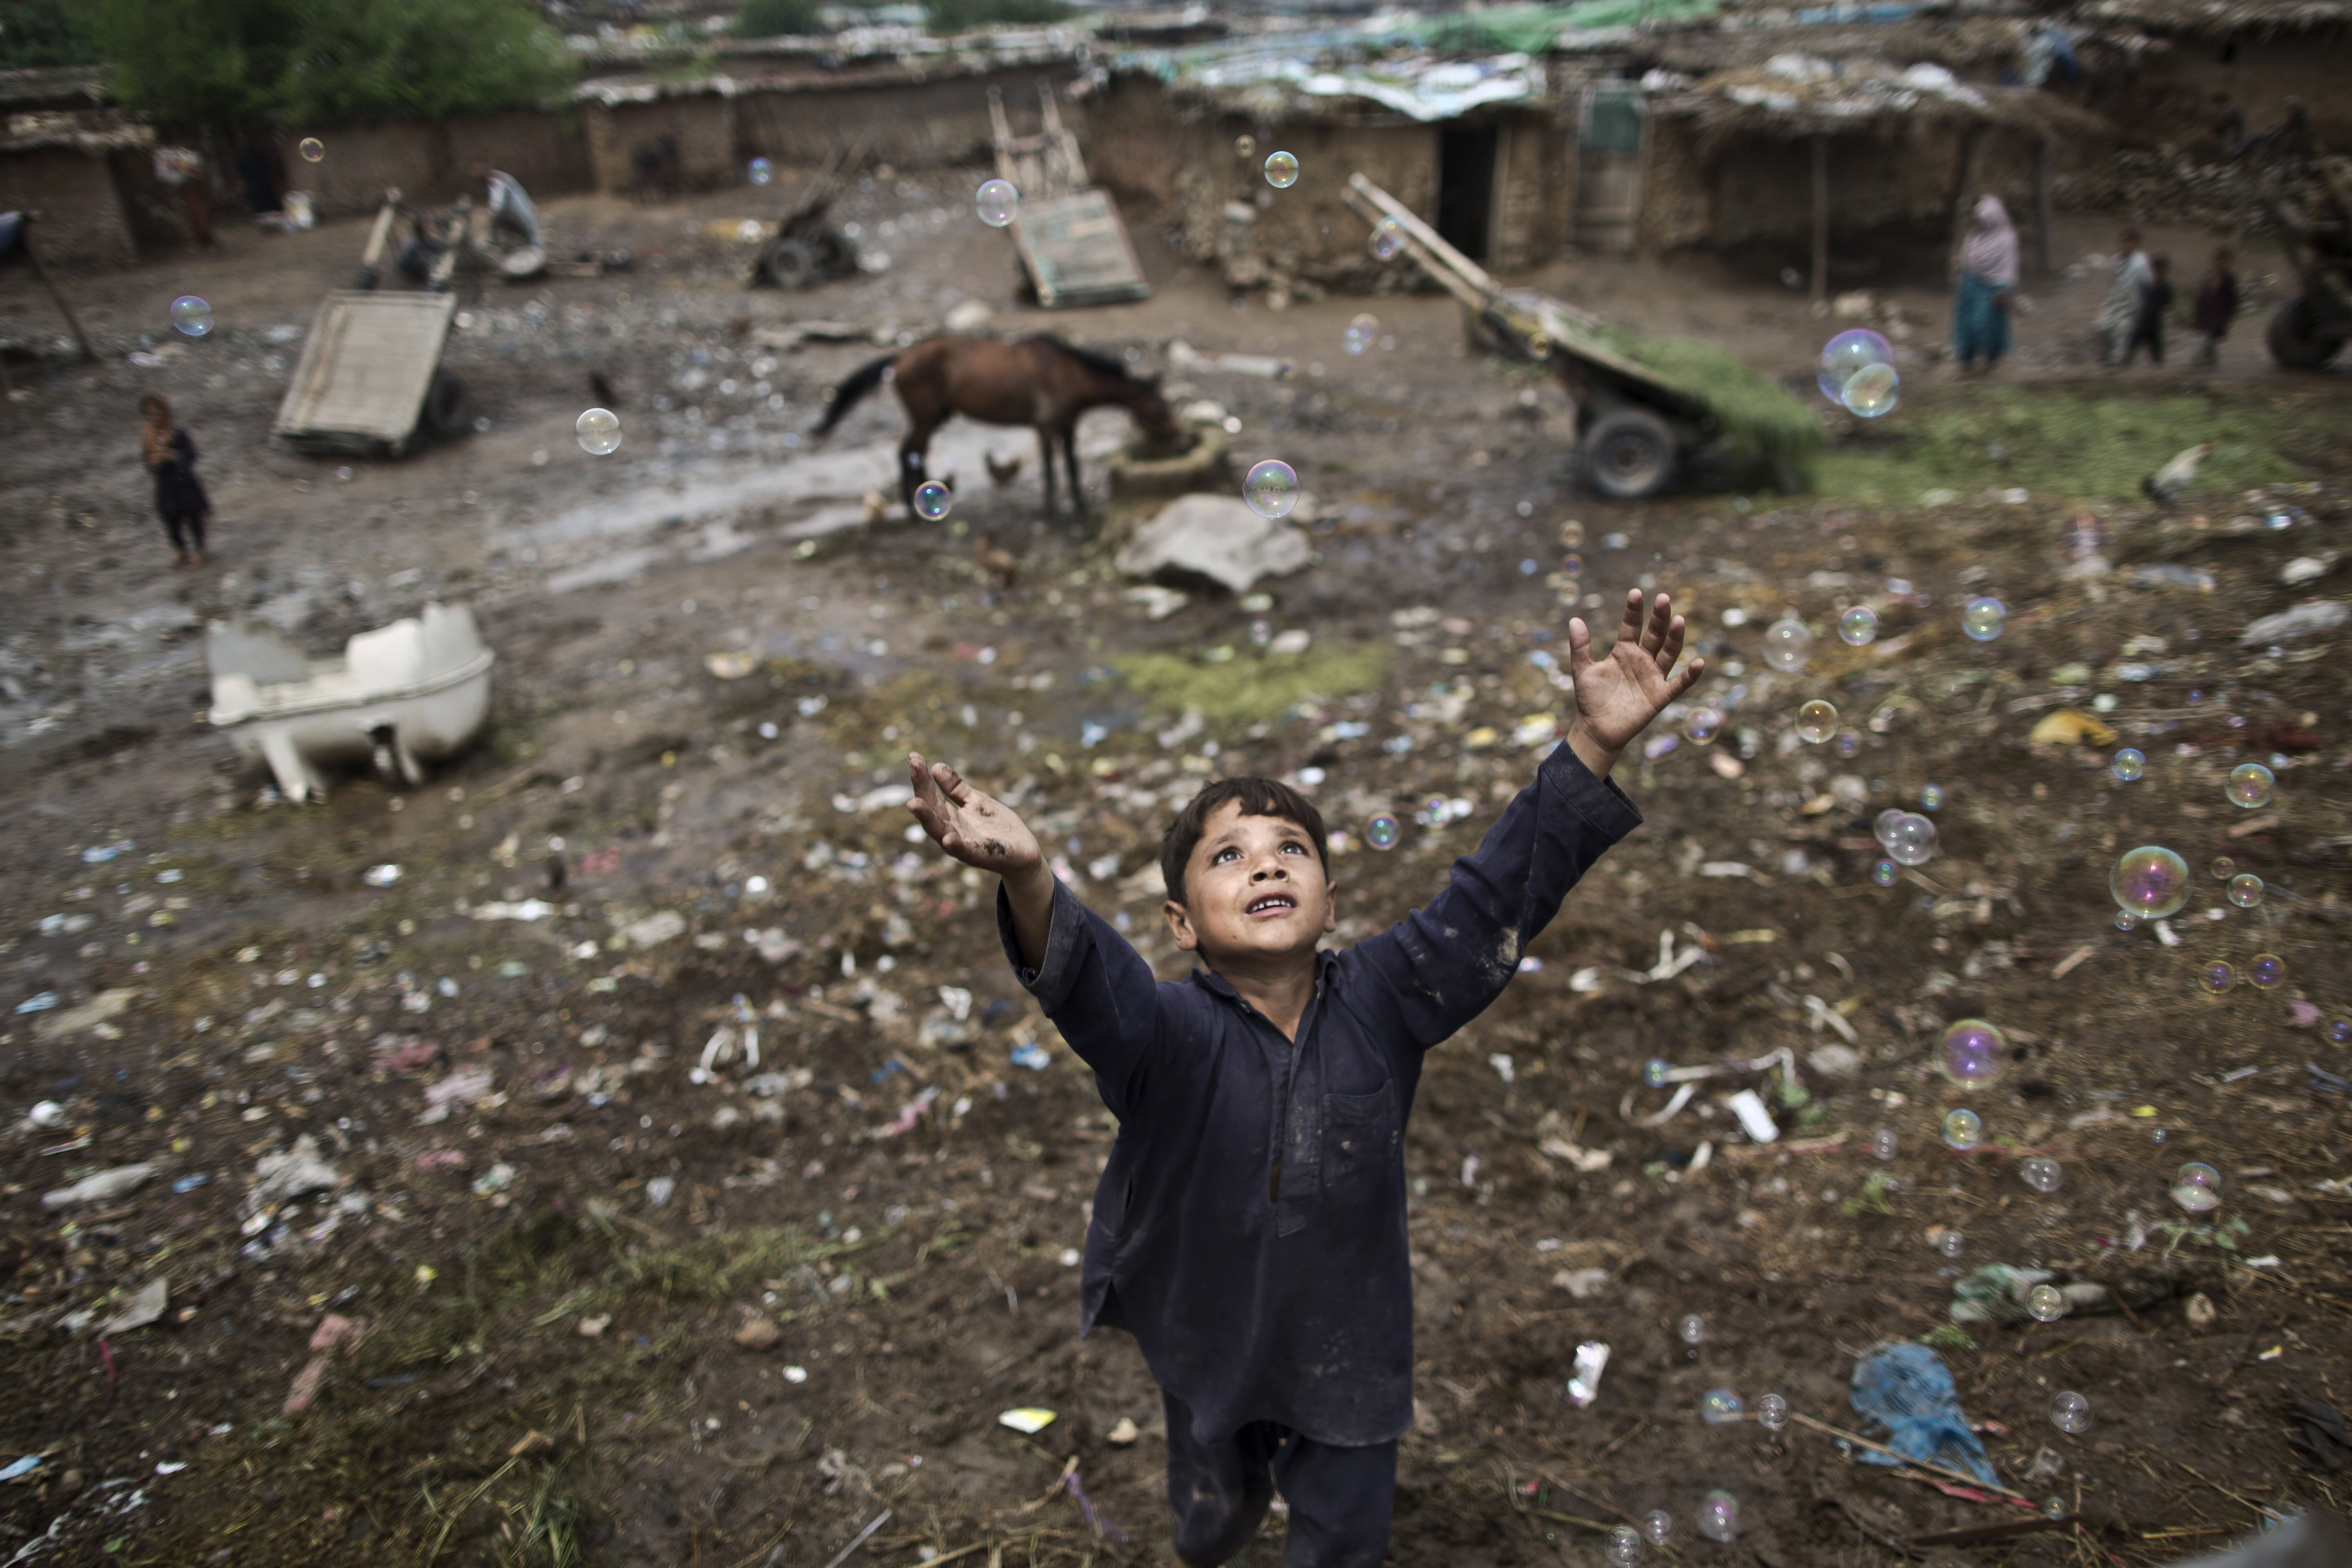 Aug. 8, 2014. An Afghan refugee child chases bubbles released by other children, while playing on the outskirts of Islamabad, Pakistan.